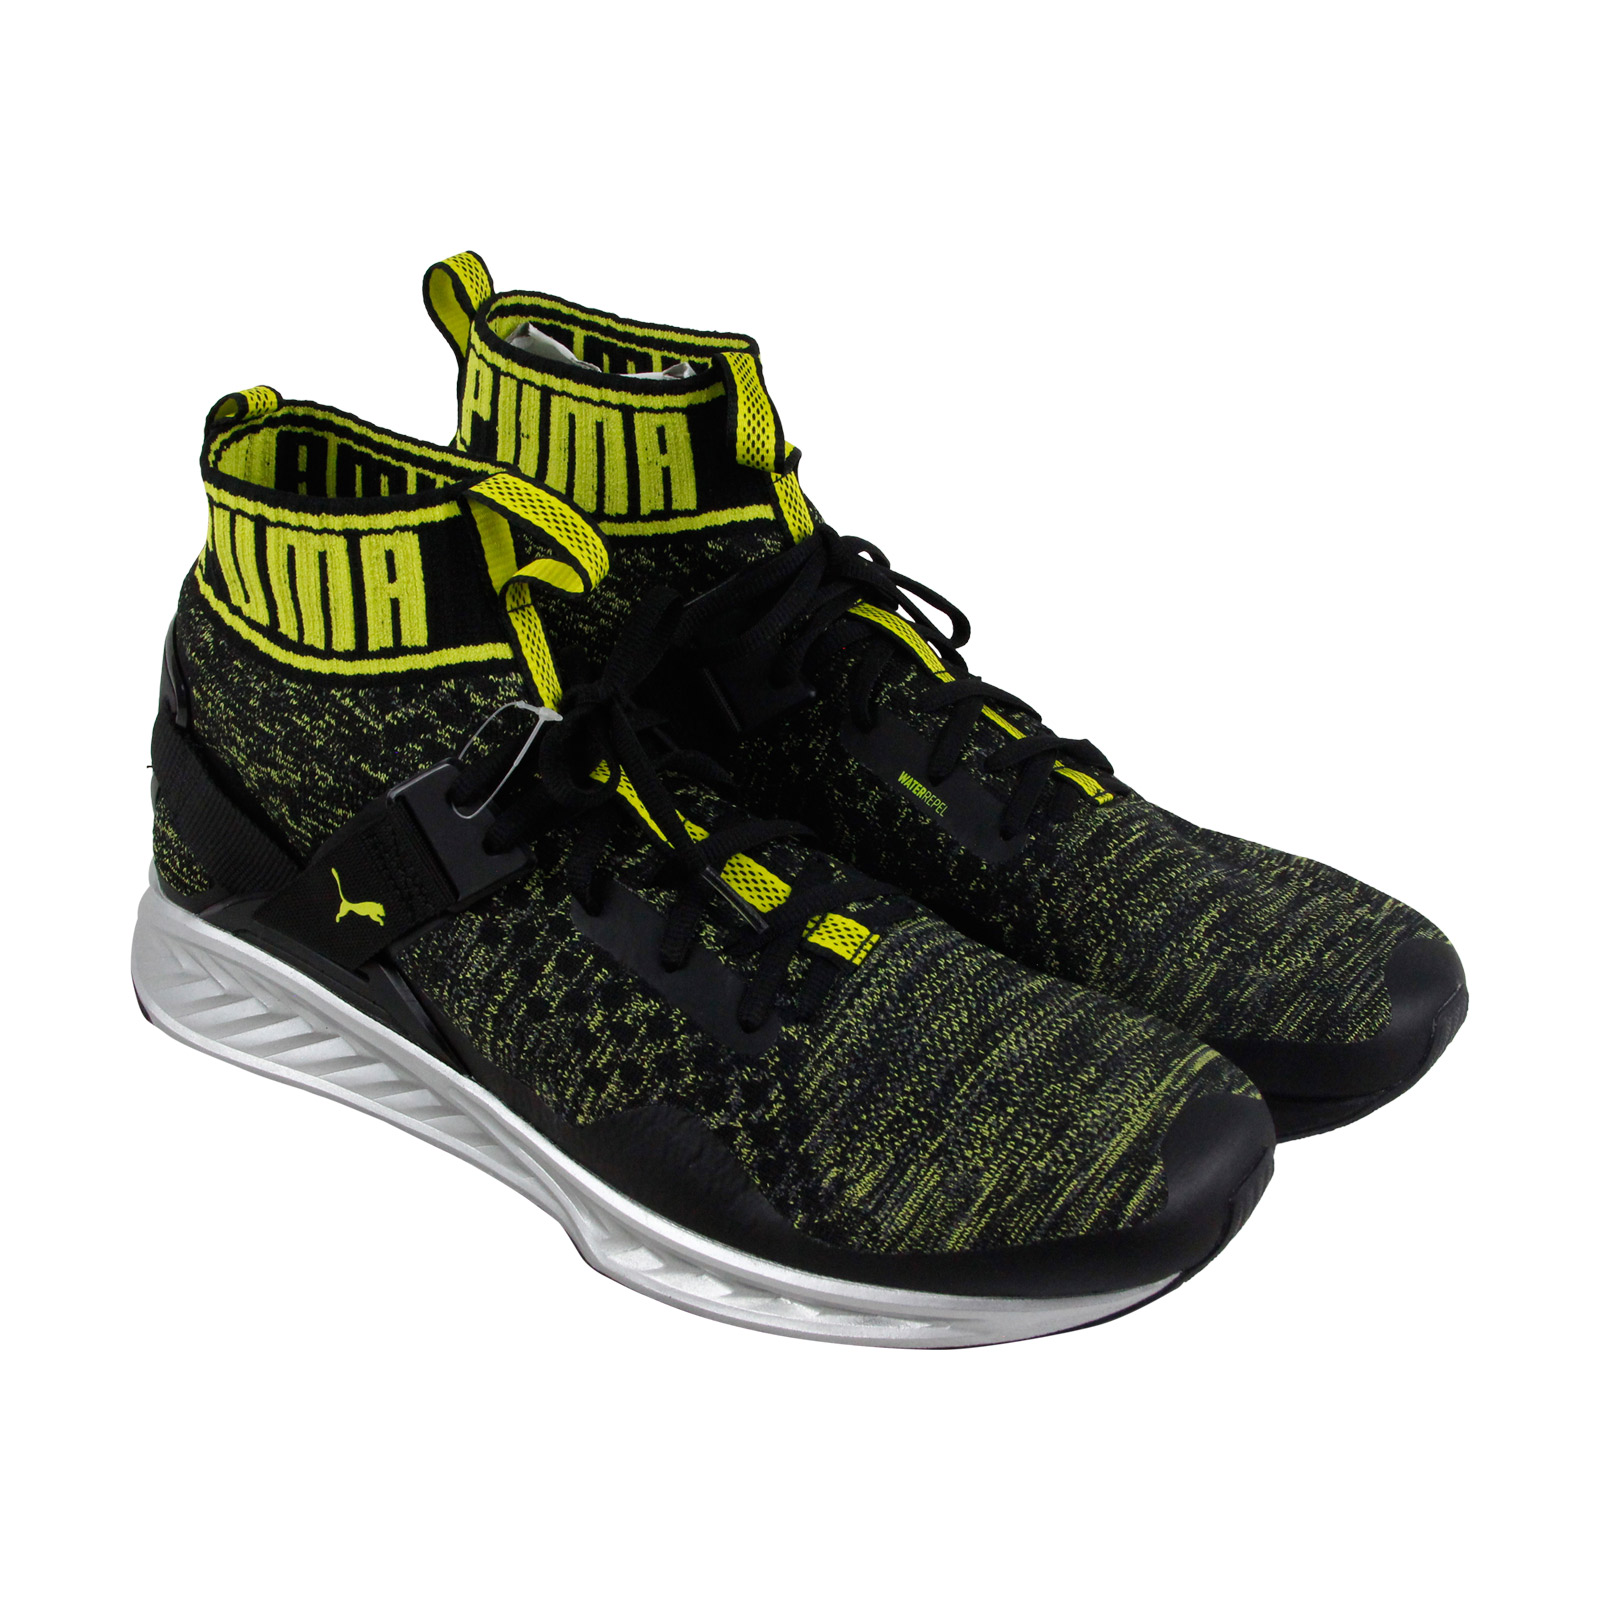 Puma Ignite Evoknit Nc Mens Black Green Textile Athletic Running Shoes